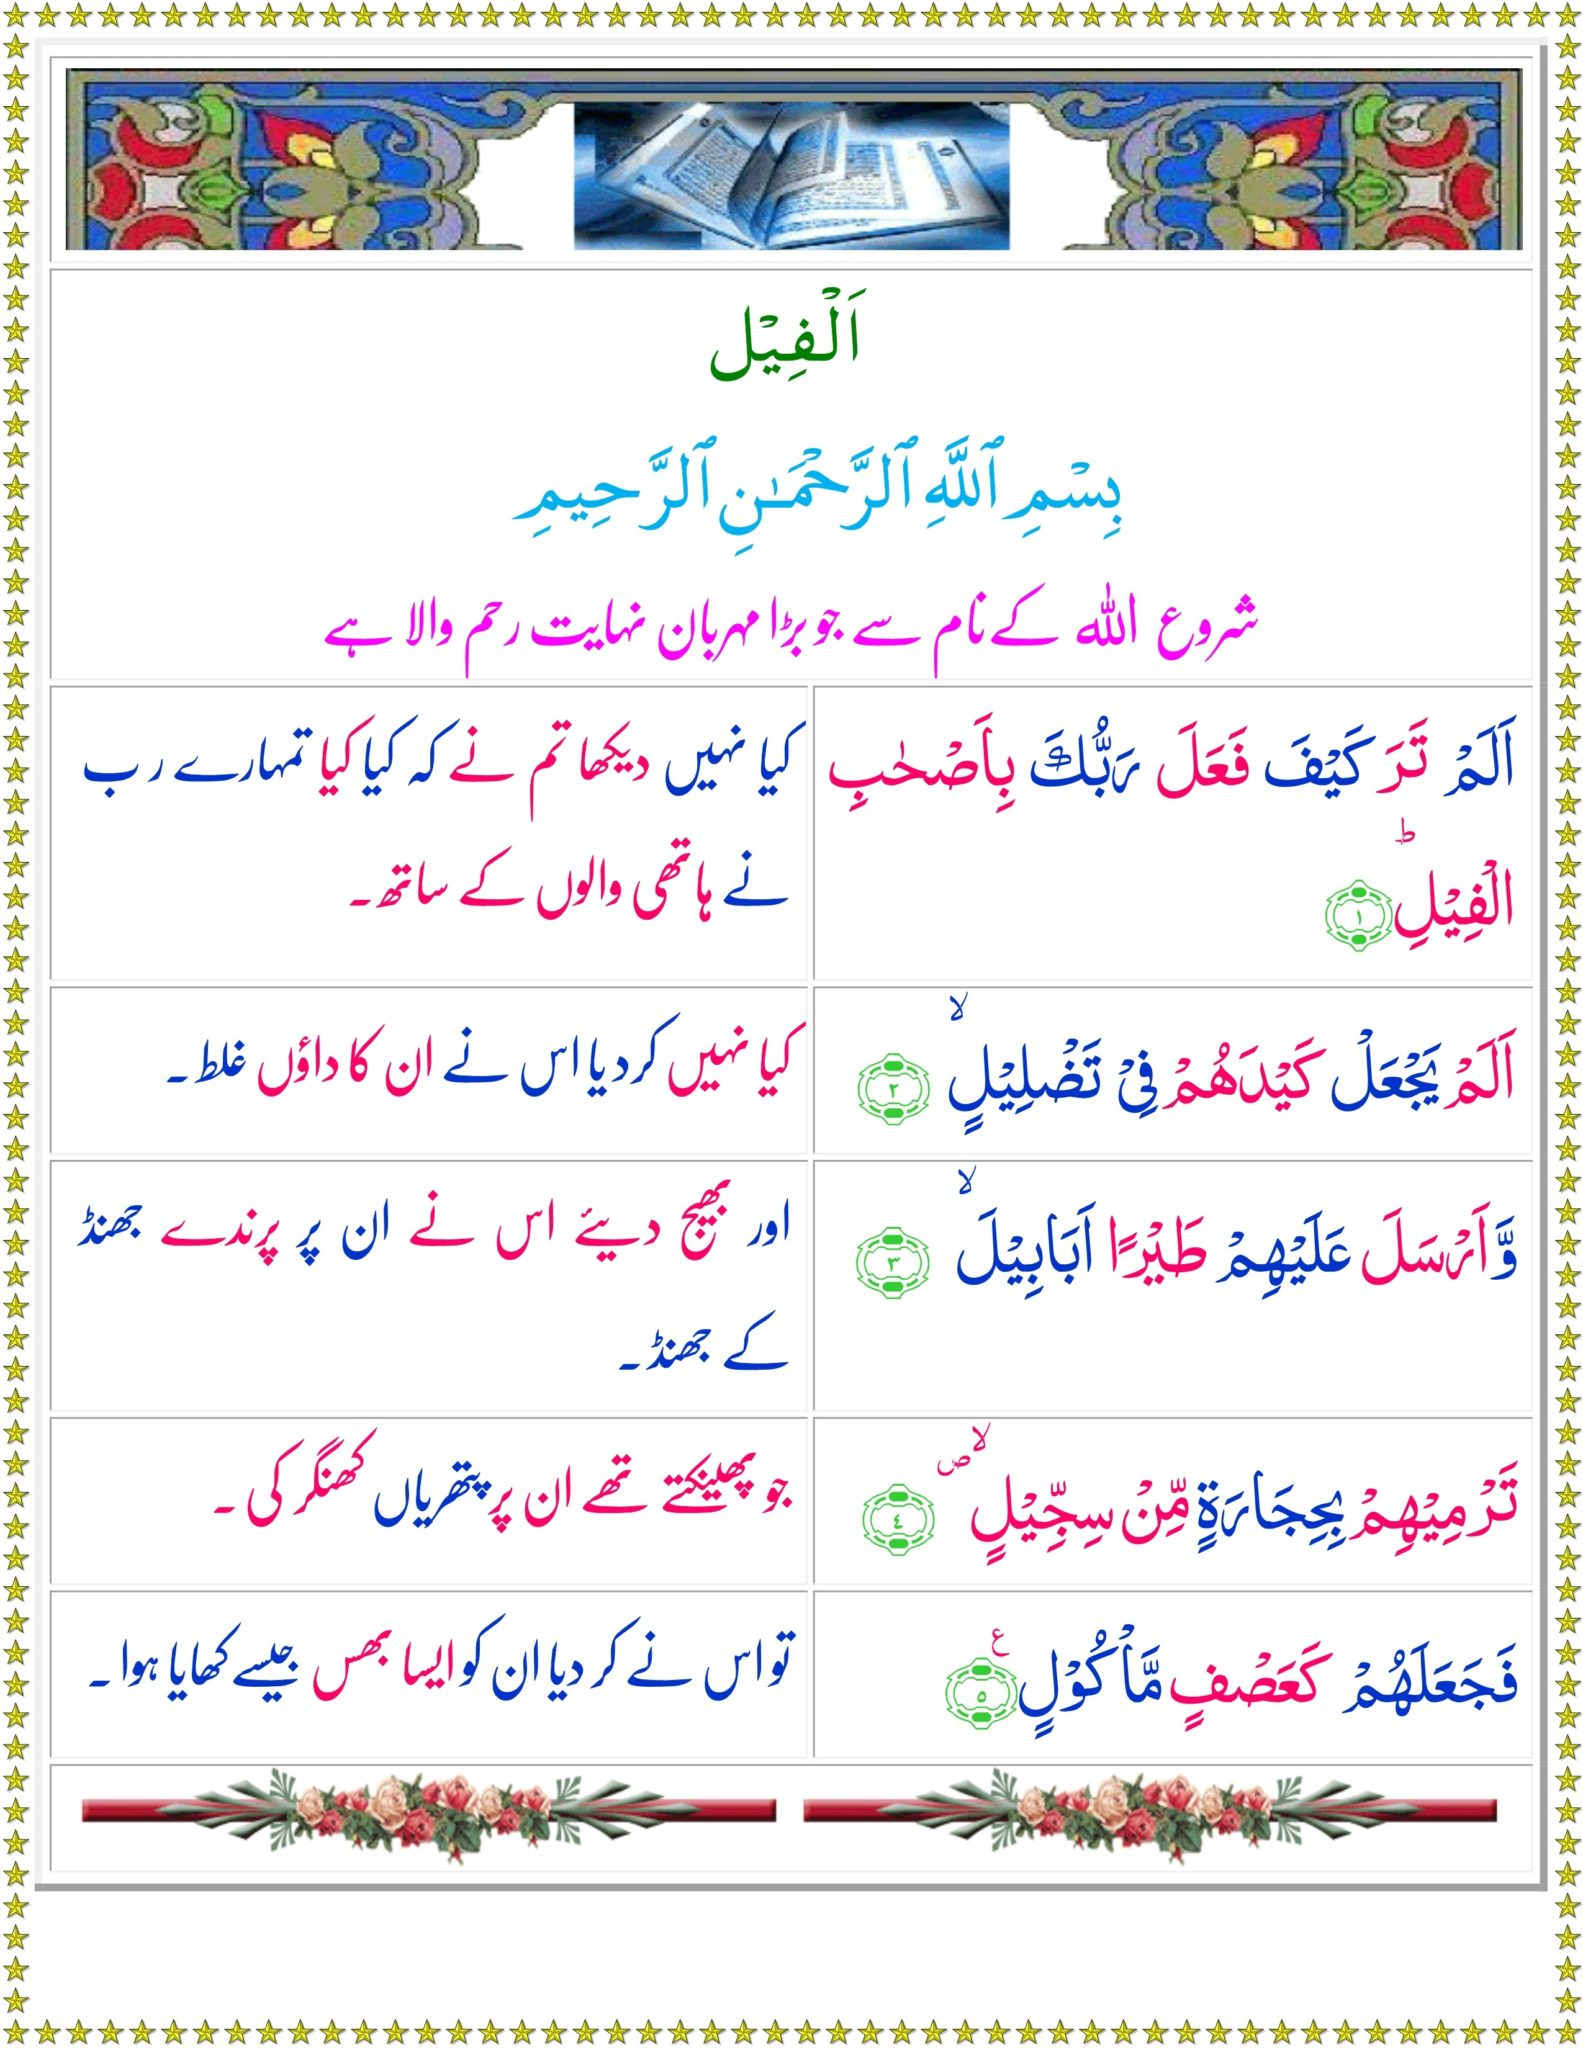 Surah Feel translation in Urdu, Hindi